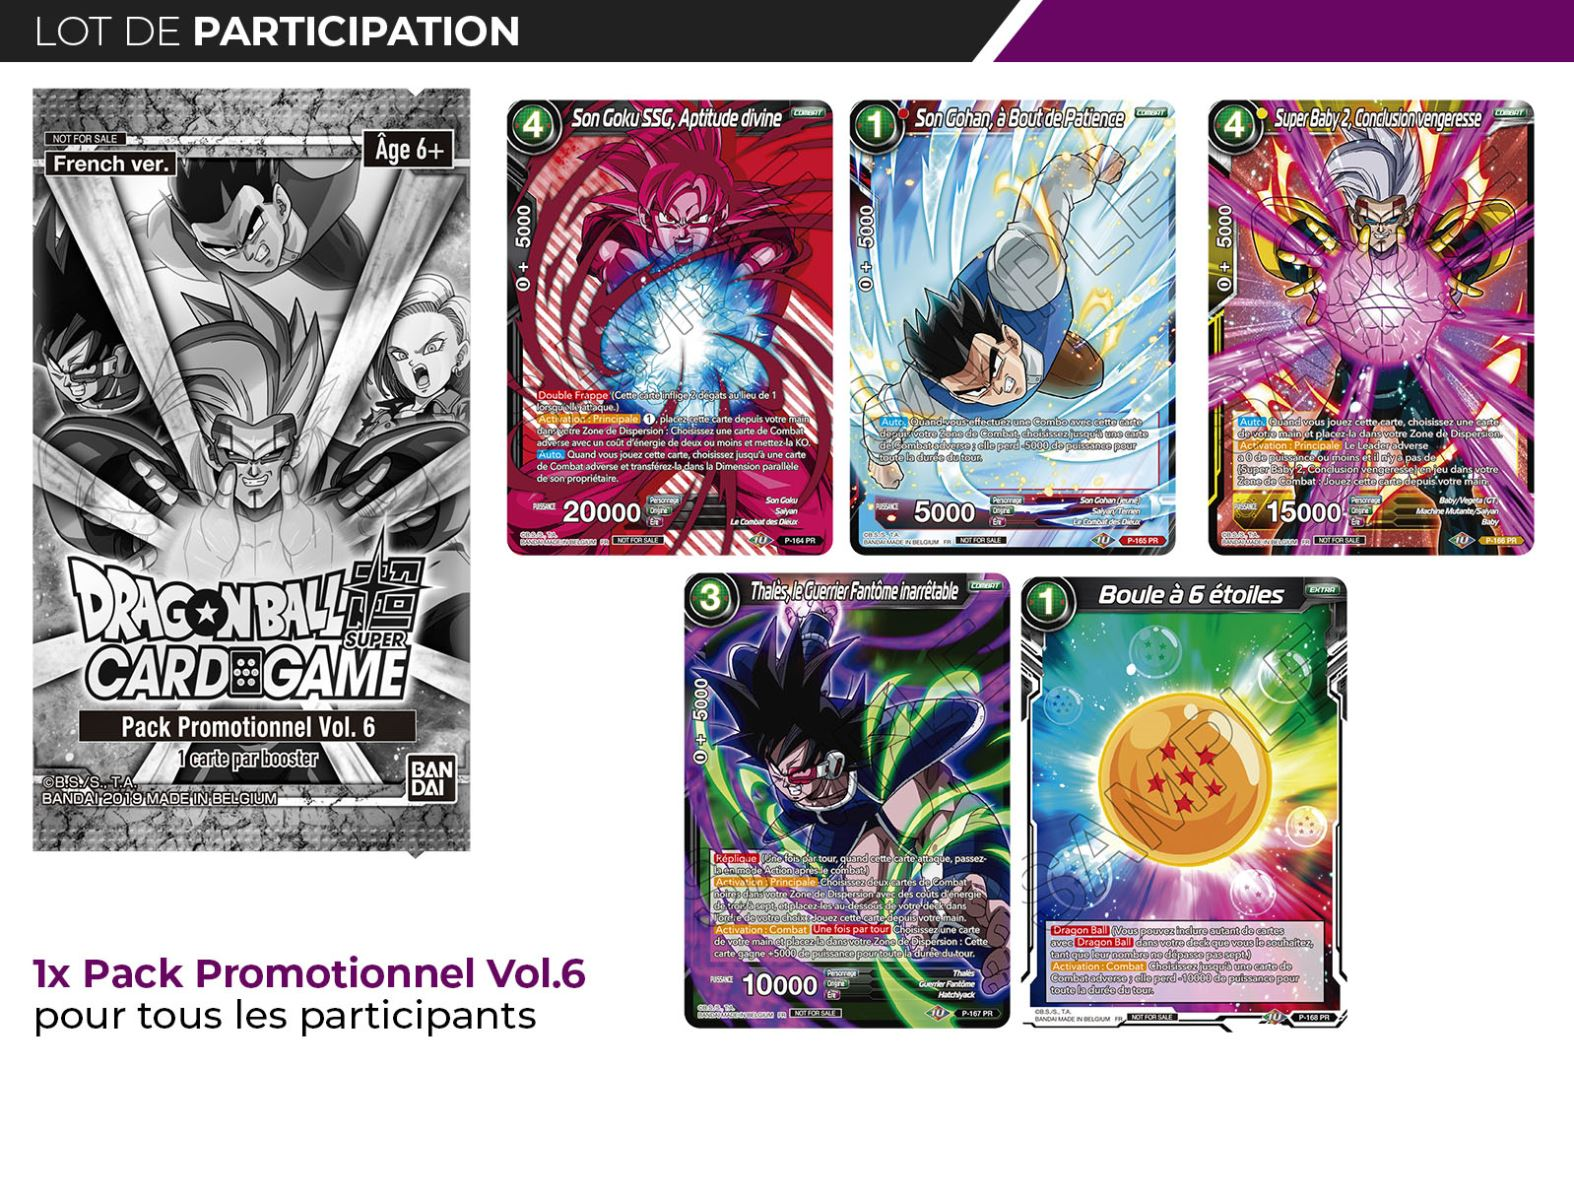 DBS malicious machinations promo participation | Jeux Toulon L'Atanière